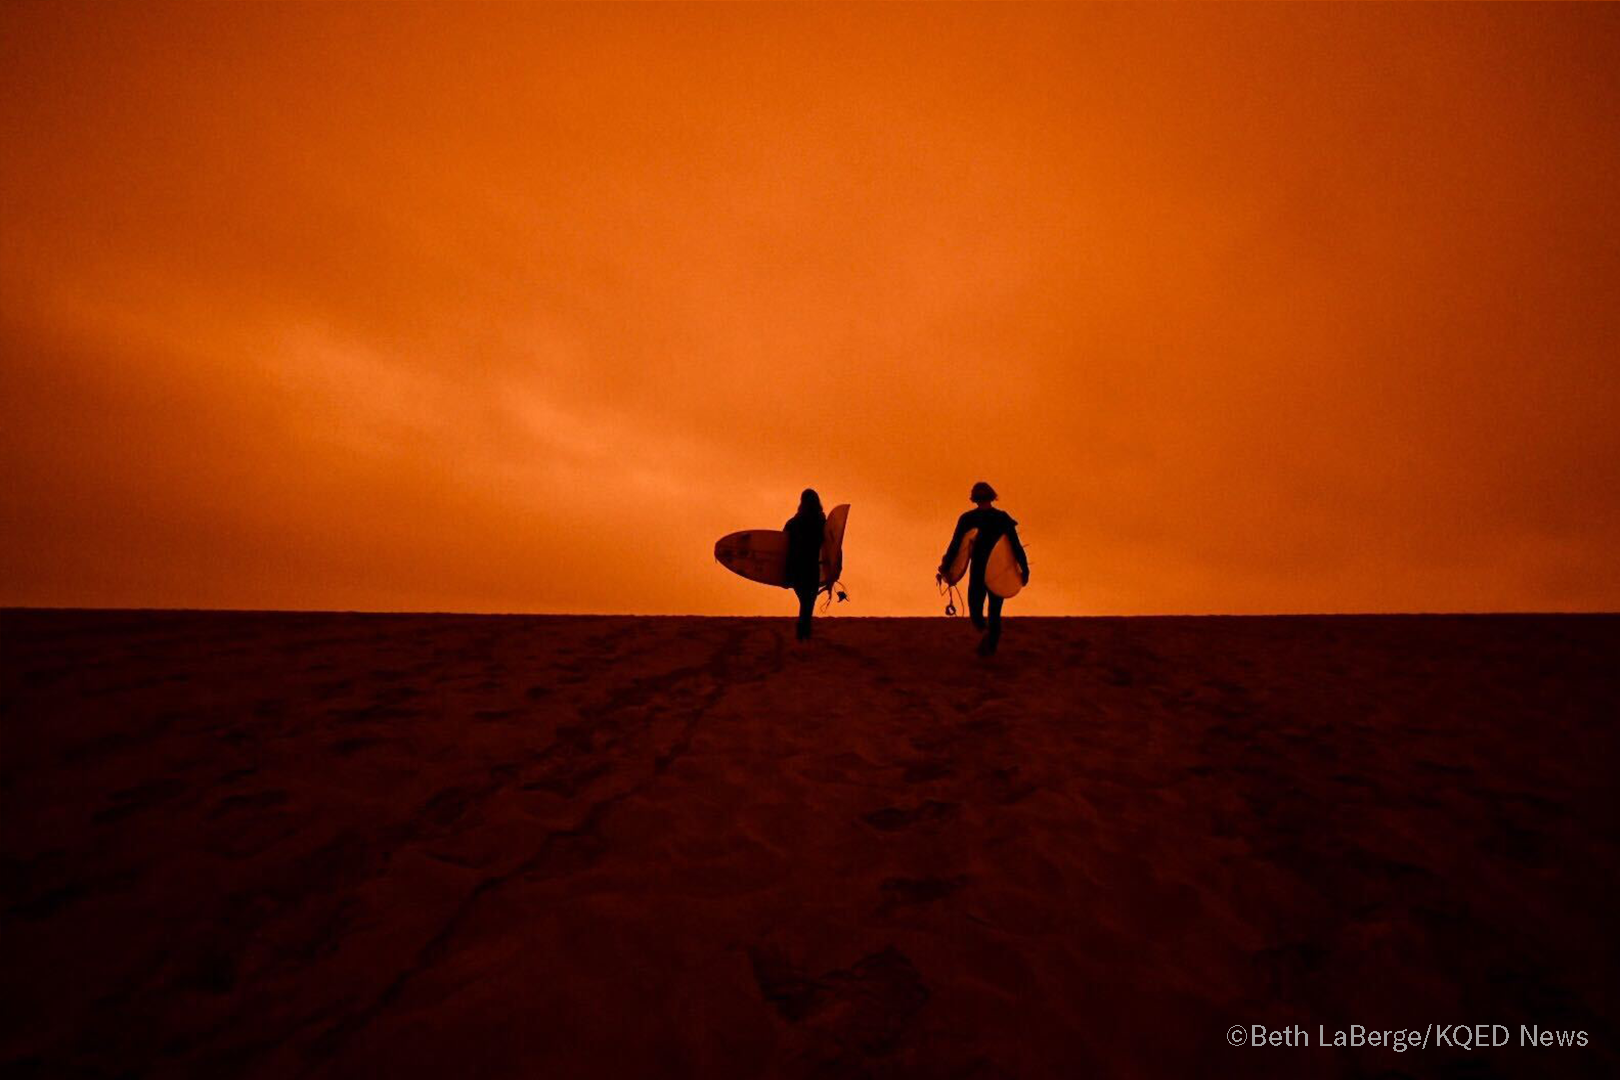 Surfers head for the the waves of Ocean Beach in San Francisco under smoke-filled orange skies, on Sept. 9, 2020.